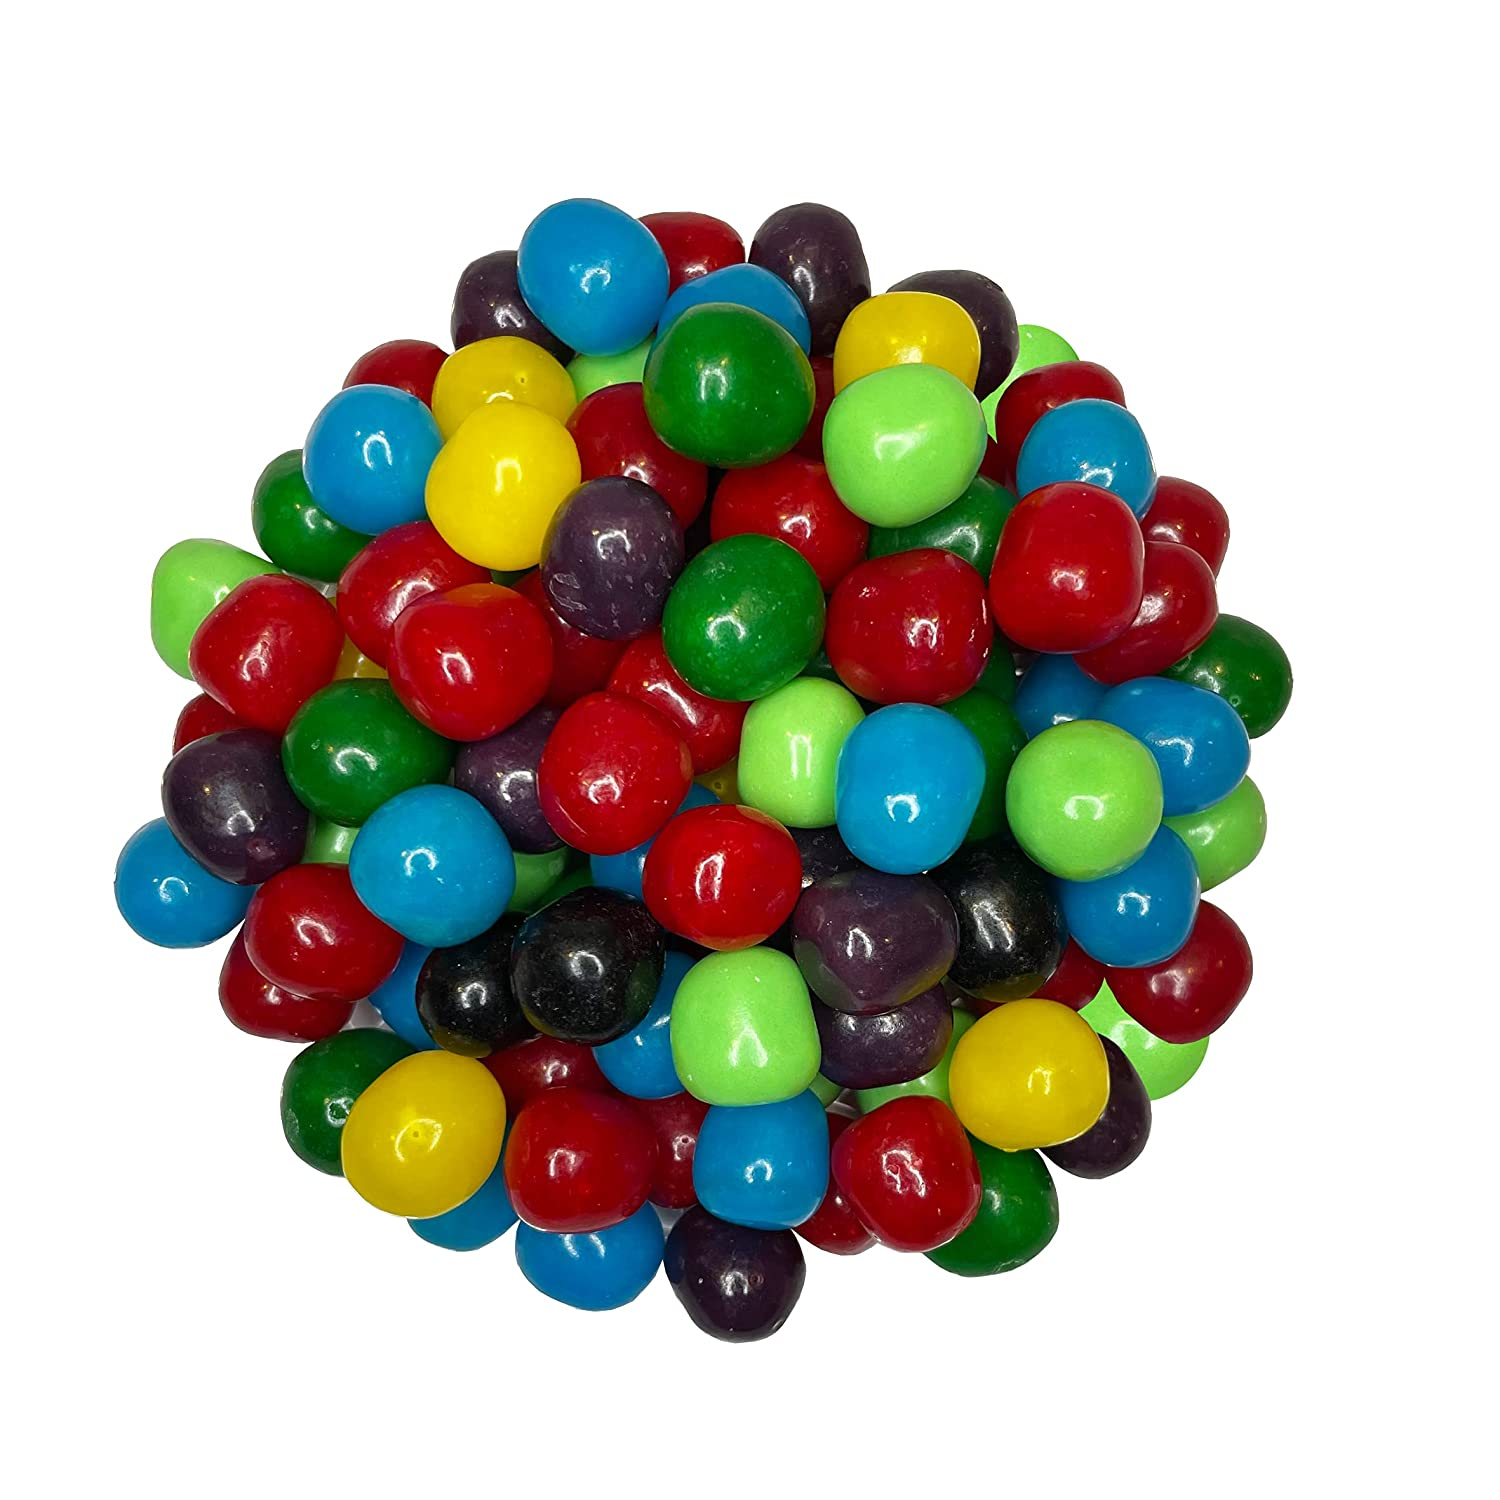 Smarty Sacramento Mall Stop Fruit Sours Chewy Assorted Candy Balls cheap 2LB